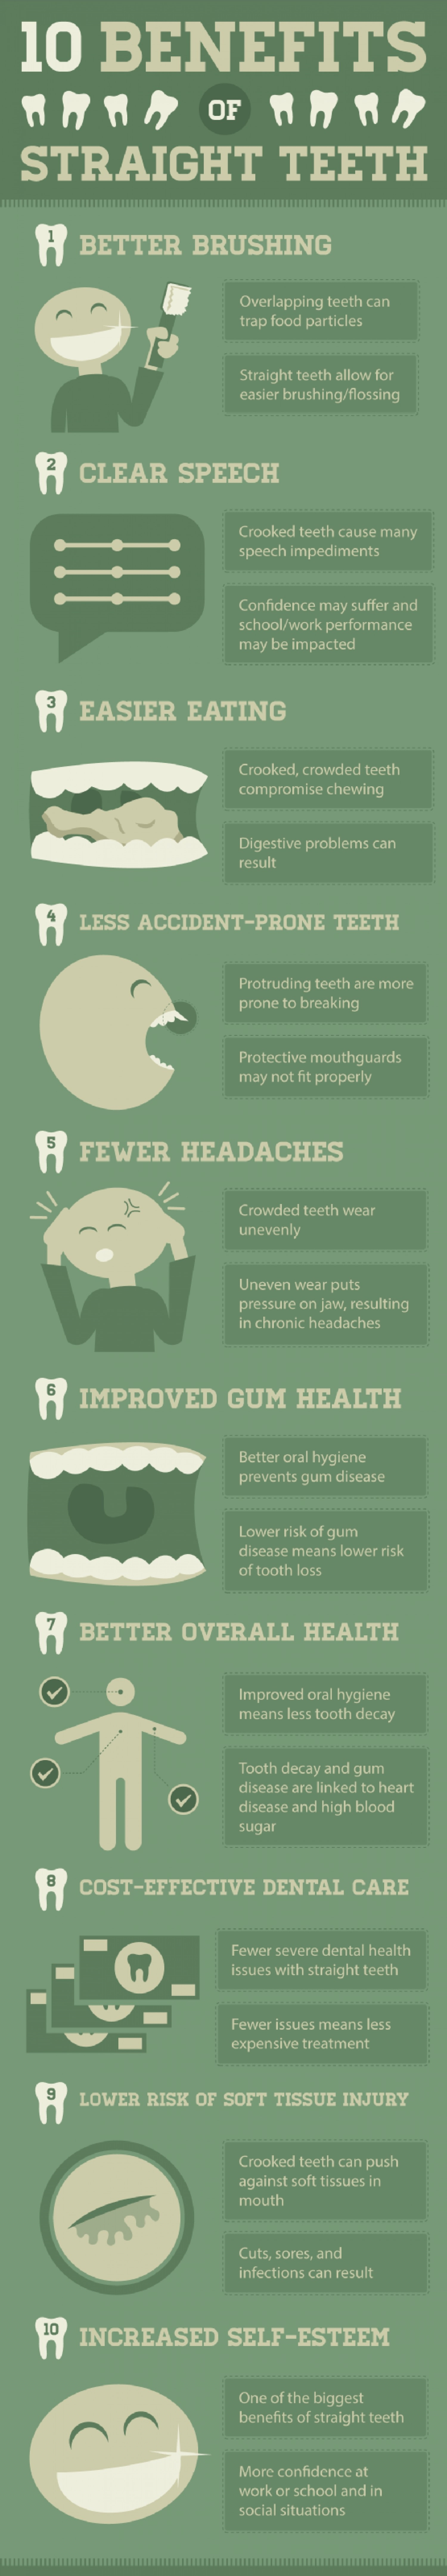 10-benefits-of-straight-teeth-pymble-dentist